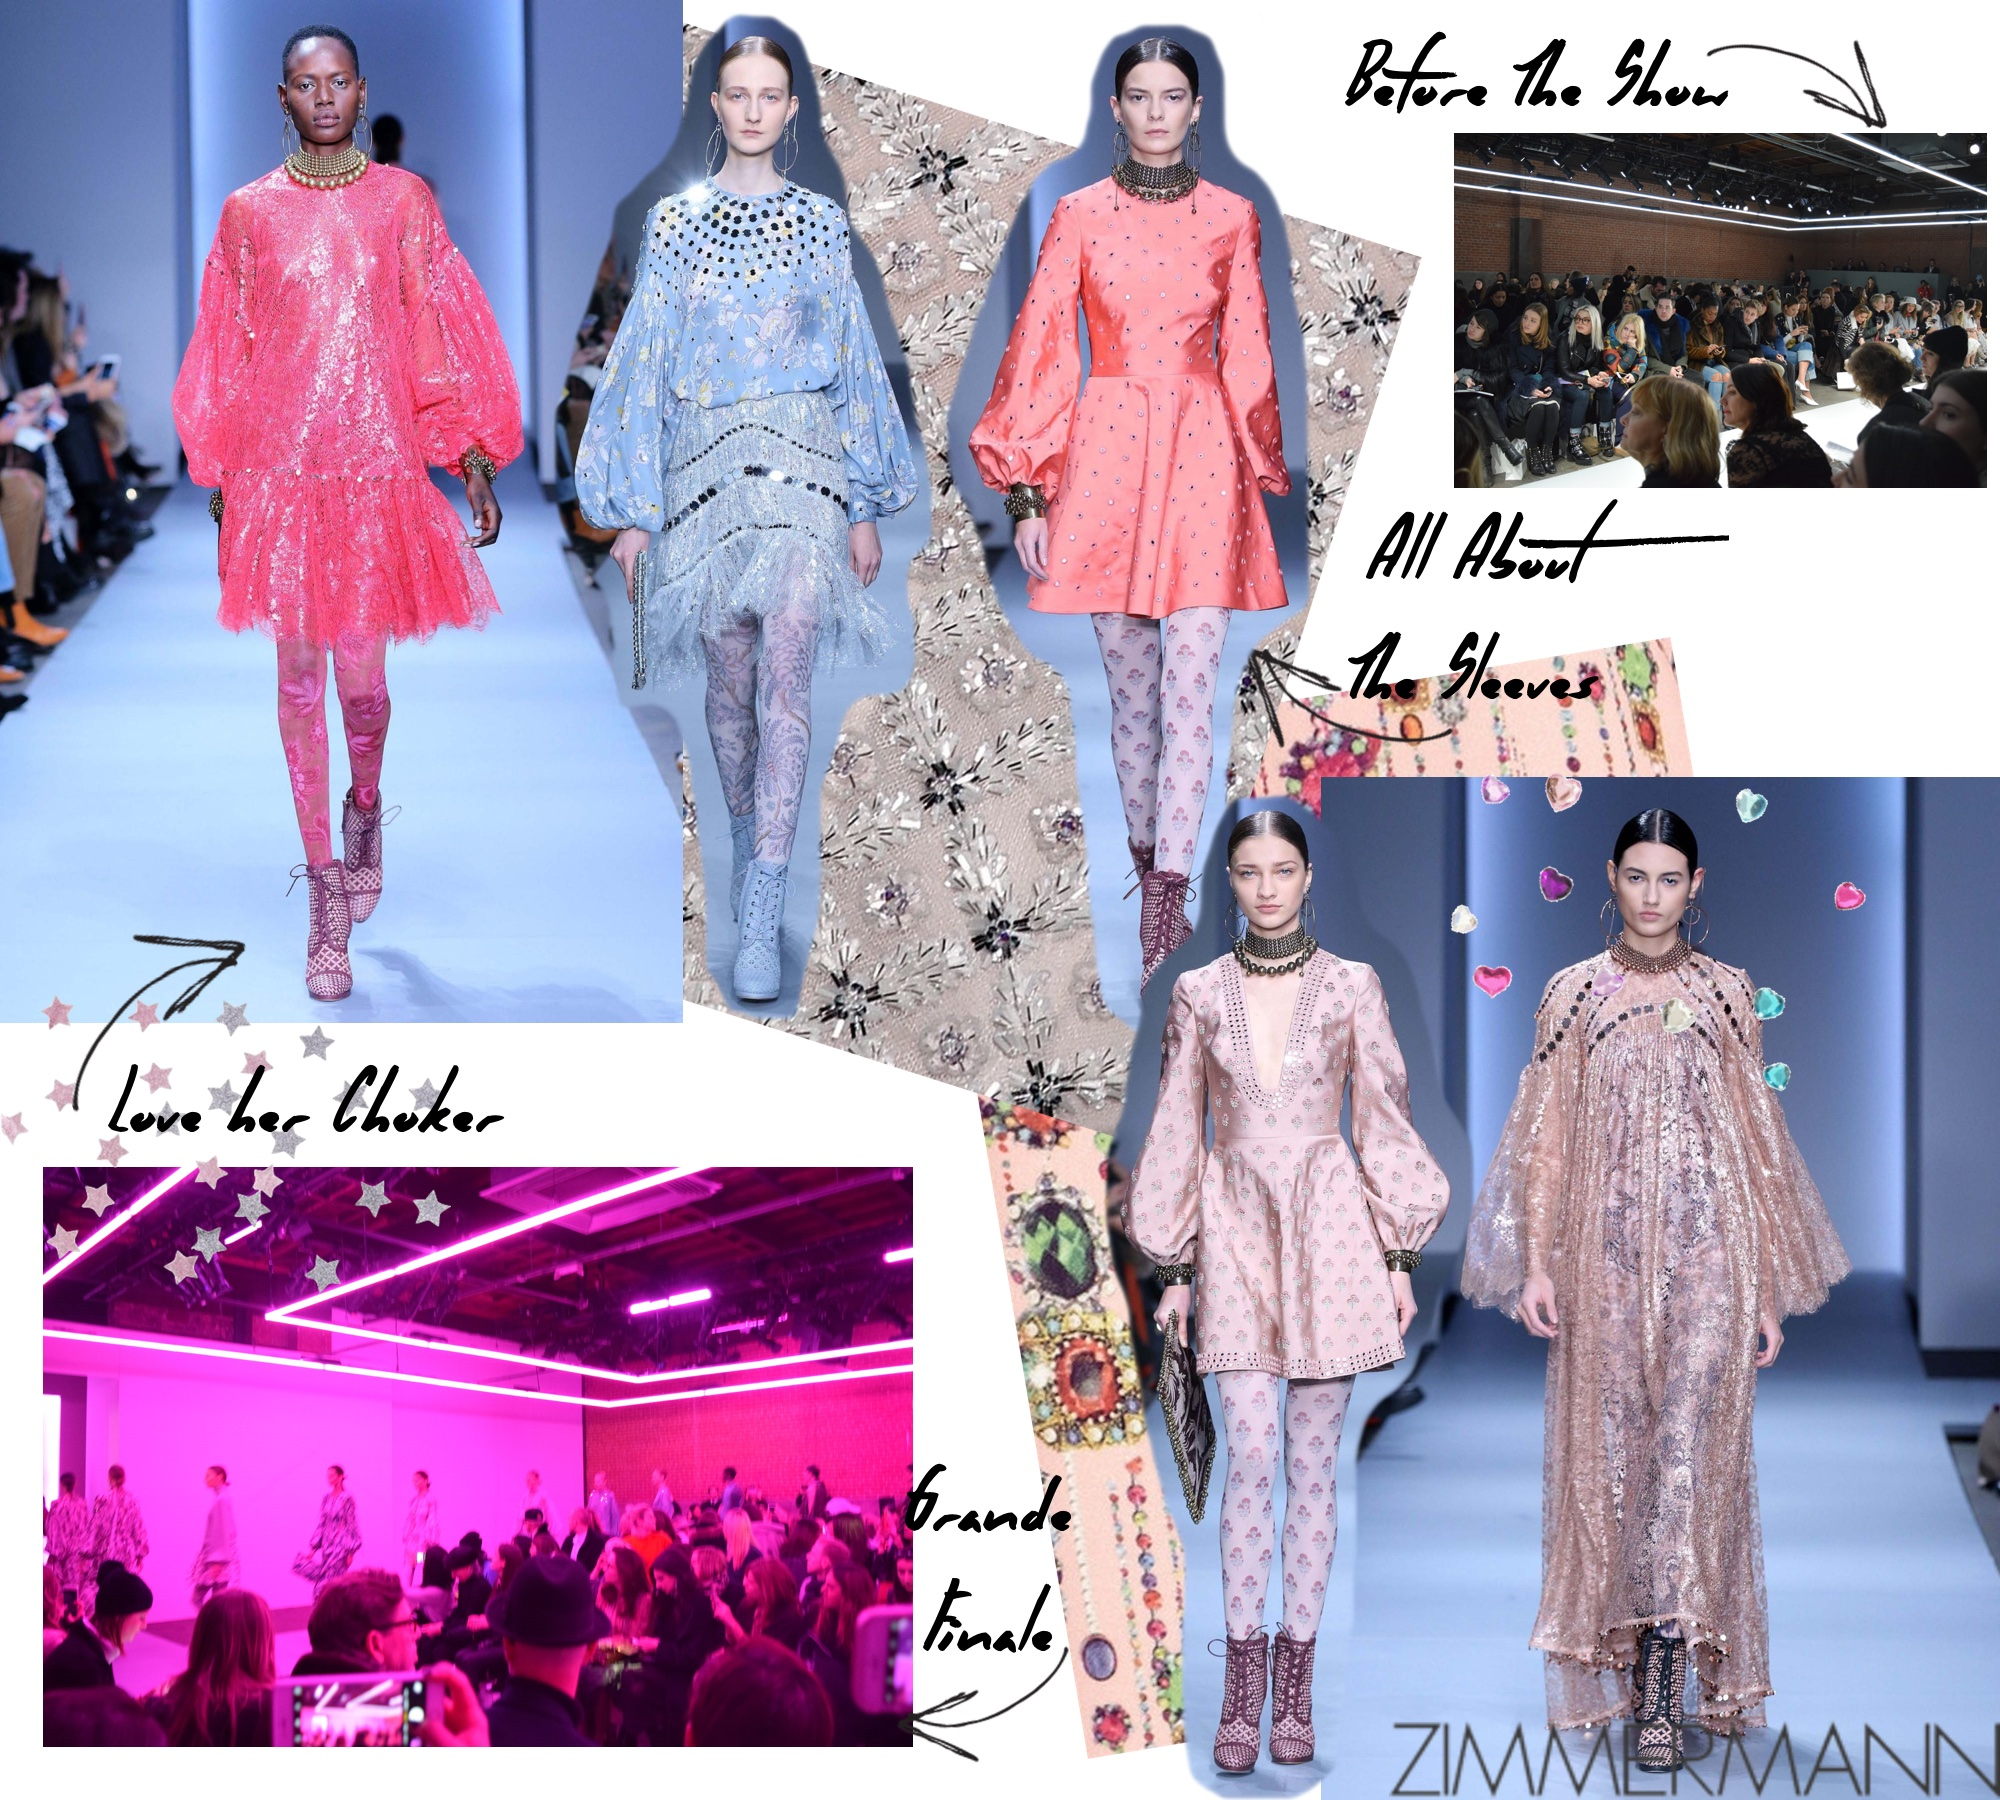 Zimmerman Fall 2016 Runway Show New York Fashion Week: To Style, With Love